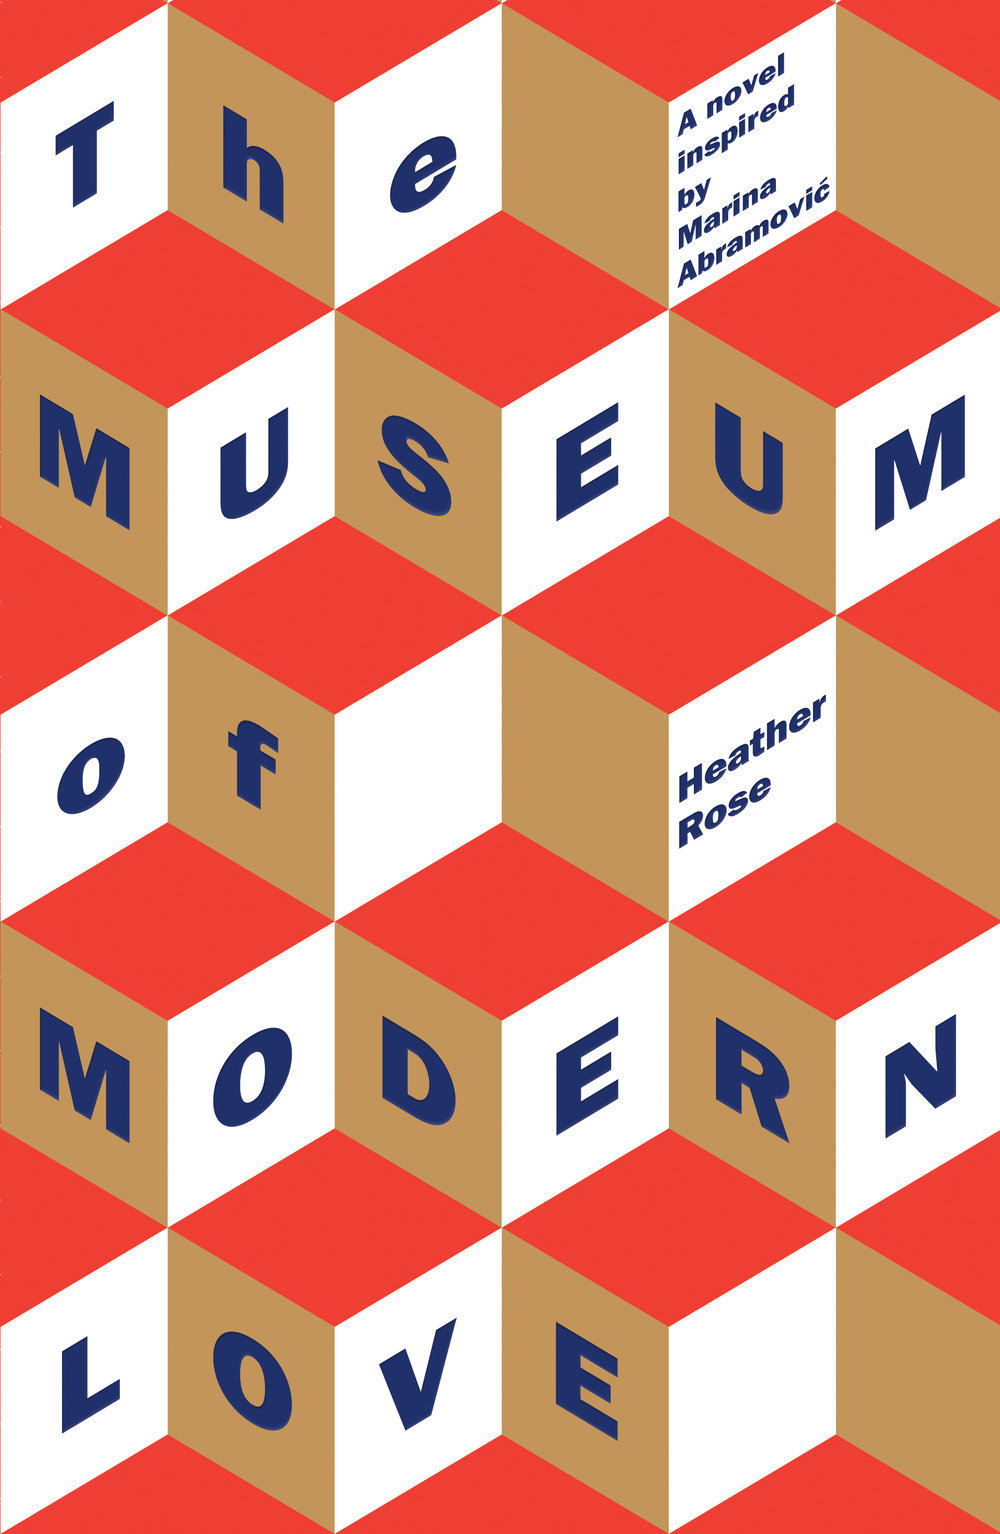 THE MUSEUM OF MODERN LOVE – HEATHER ROSE - A mesmerising literary novel about a lost man in search of connection - a meditation on love, art and commitment, set against the backdrop of one of the greatest art events in modern history.WINNER OF THE MARGARET SCOTT PRIZE